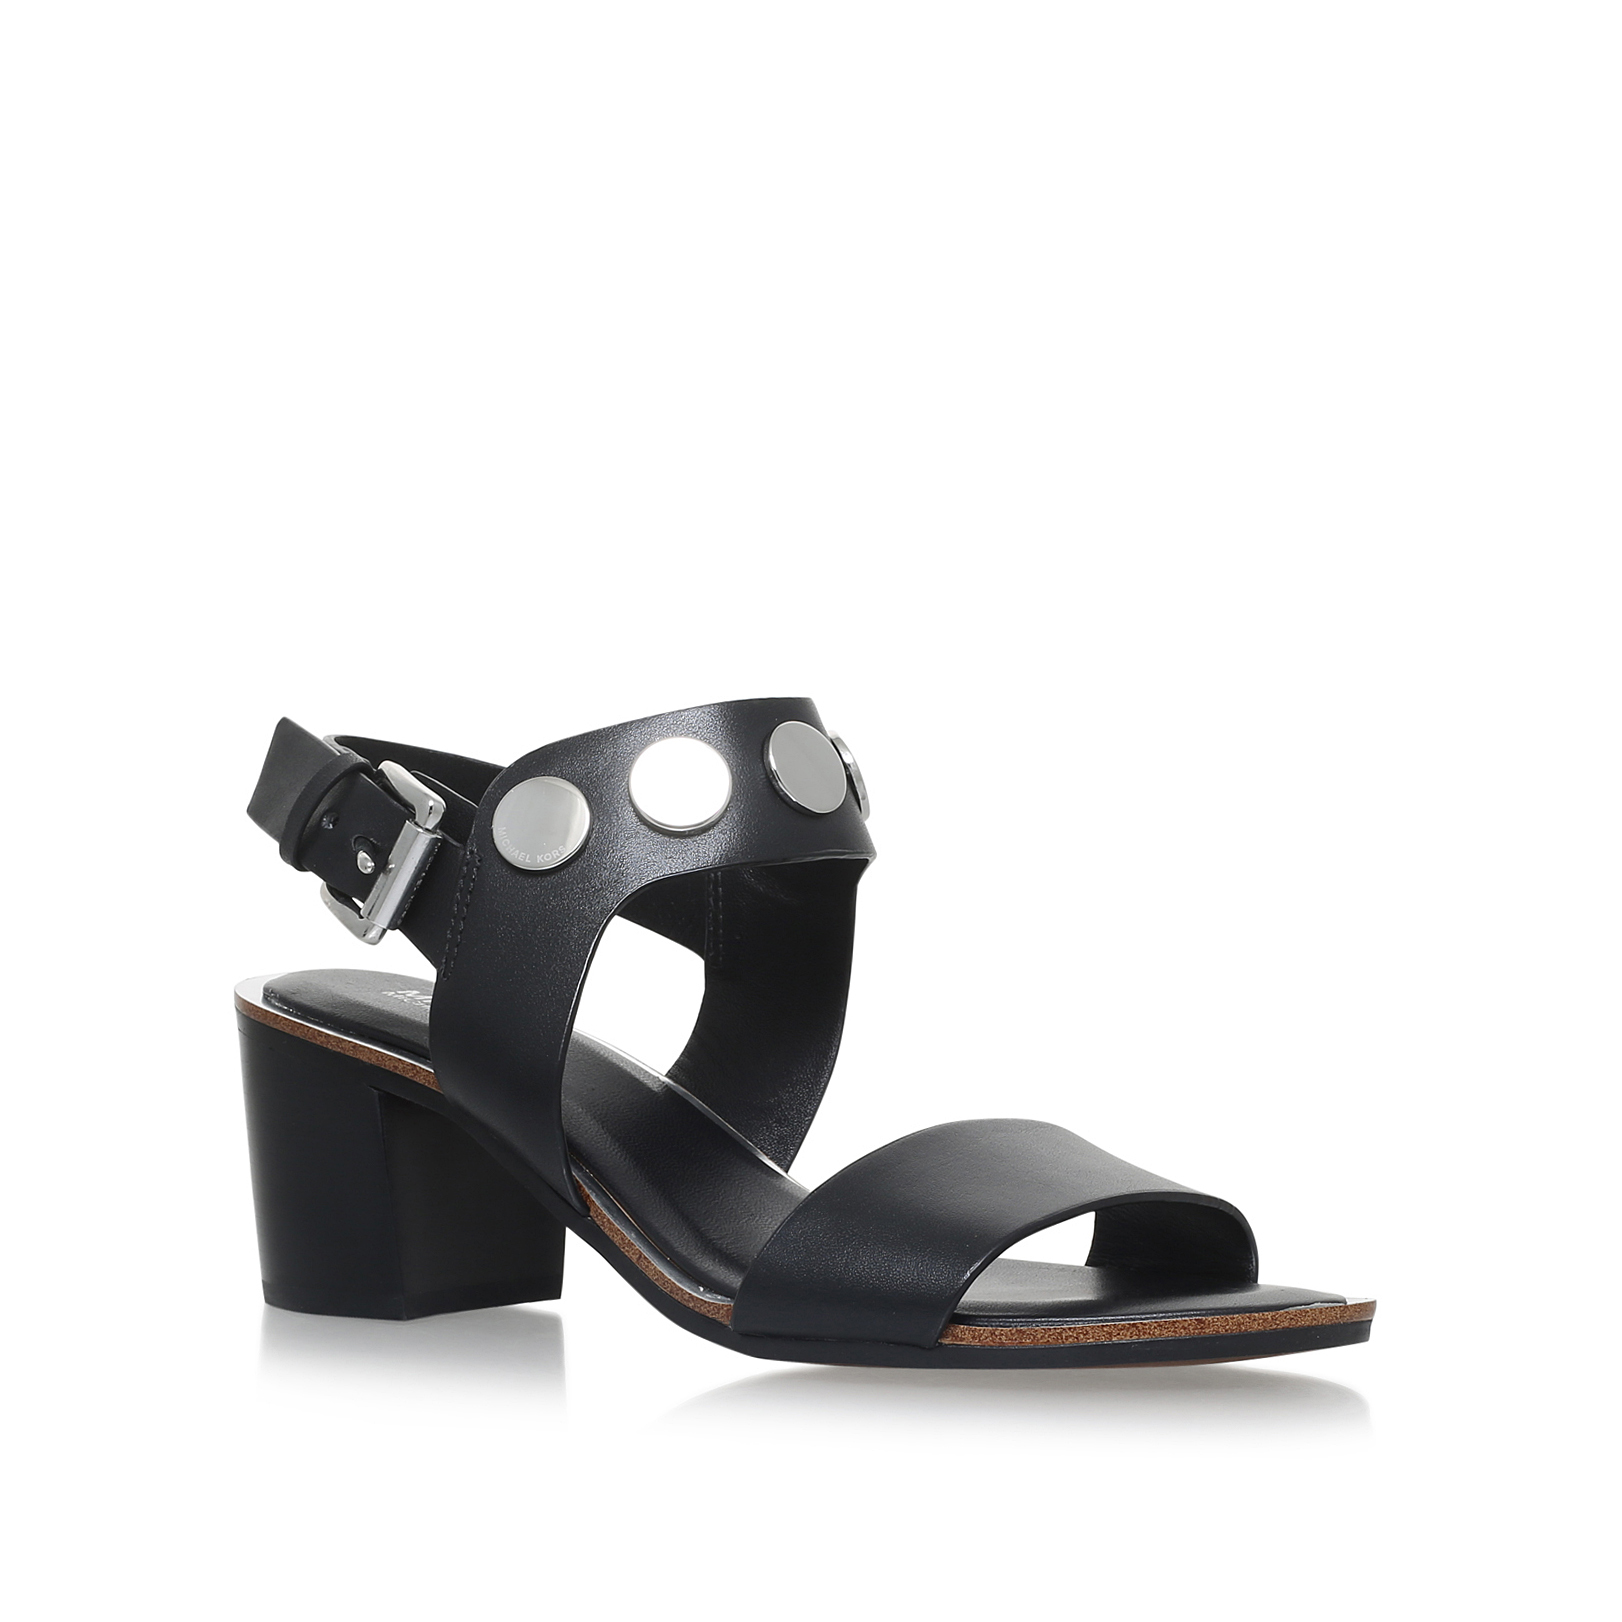 28b6e078b1d4 REGGIE MID Michael Michael Kors Reggie Black Leather Mid Heel Sandals Block  Heel by MICHAEL MICHAEL KORS